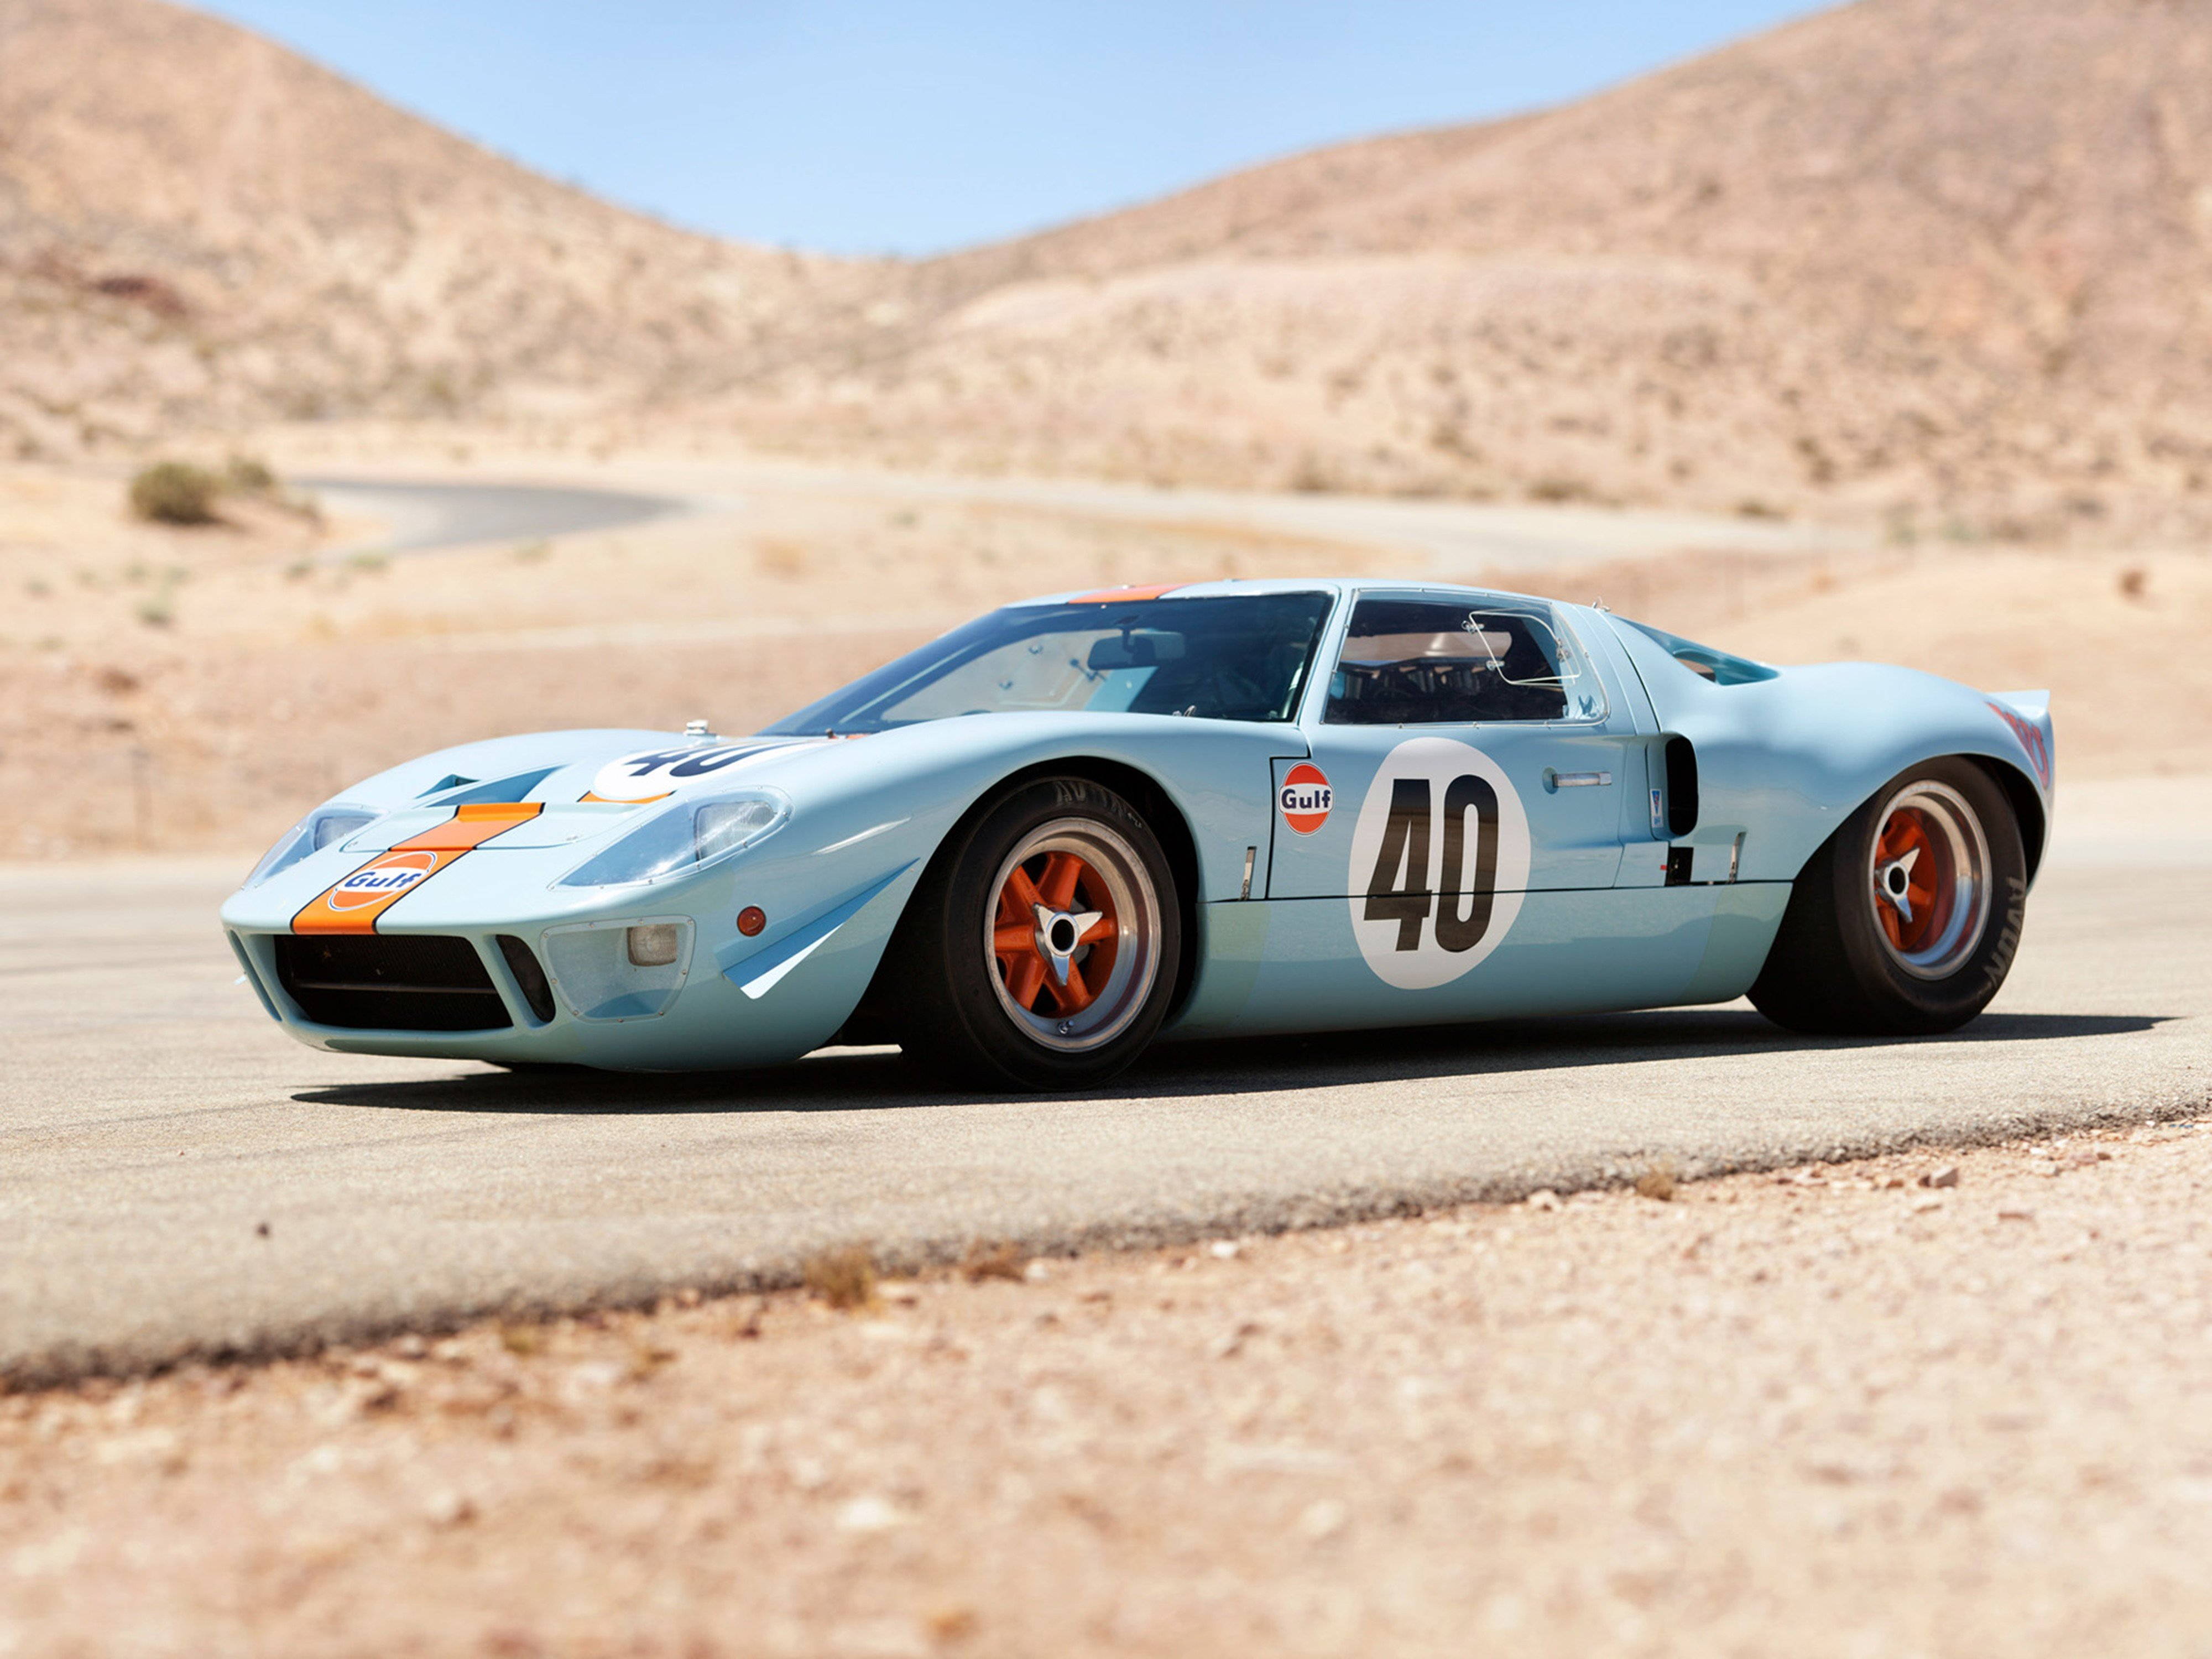 1968 Gulf Ford GT40 Le-Mans Racing Car Race Classic 4000x3000 ...